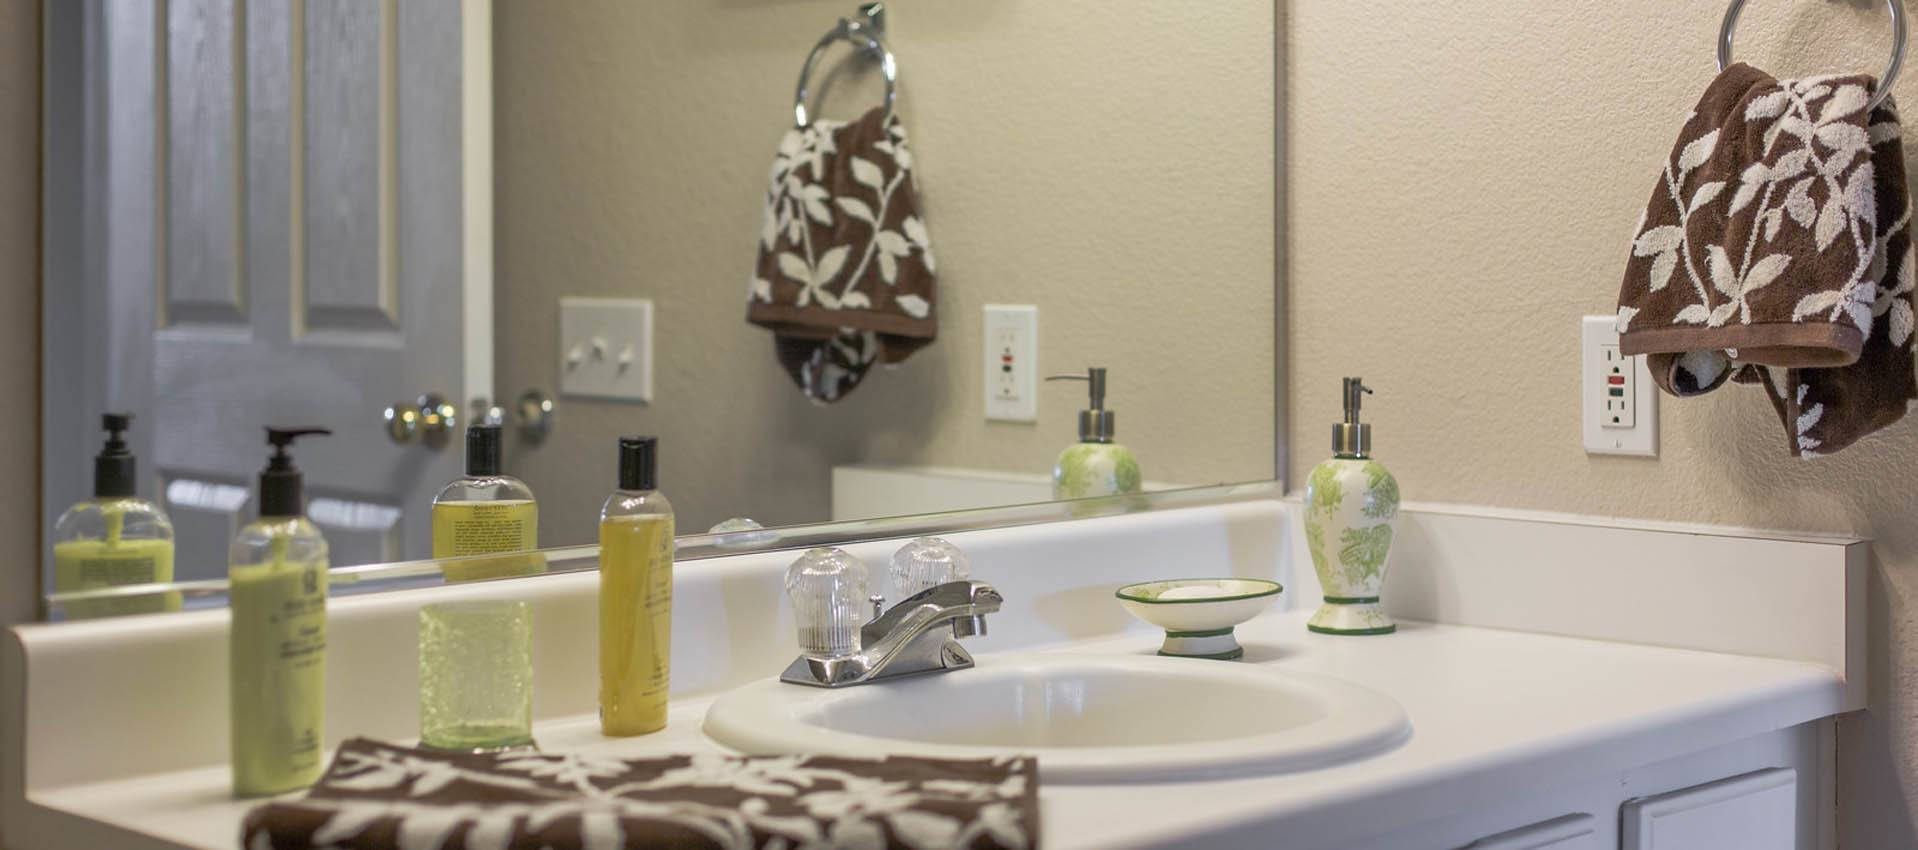 Your new bathroom at Alicante Apartment Homes in Aliso Viejo, CA